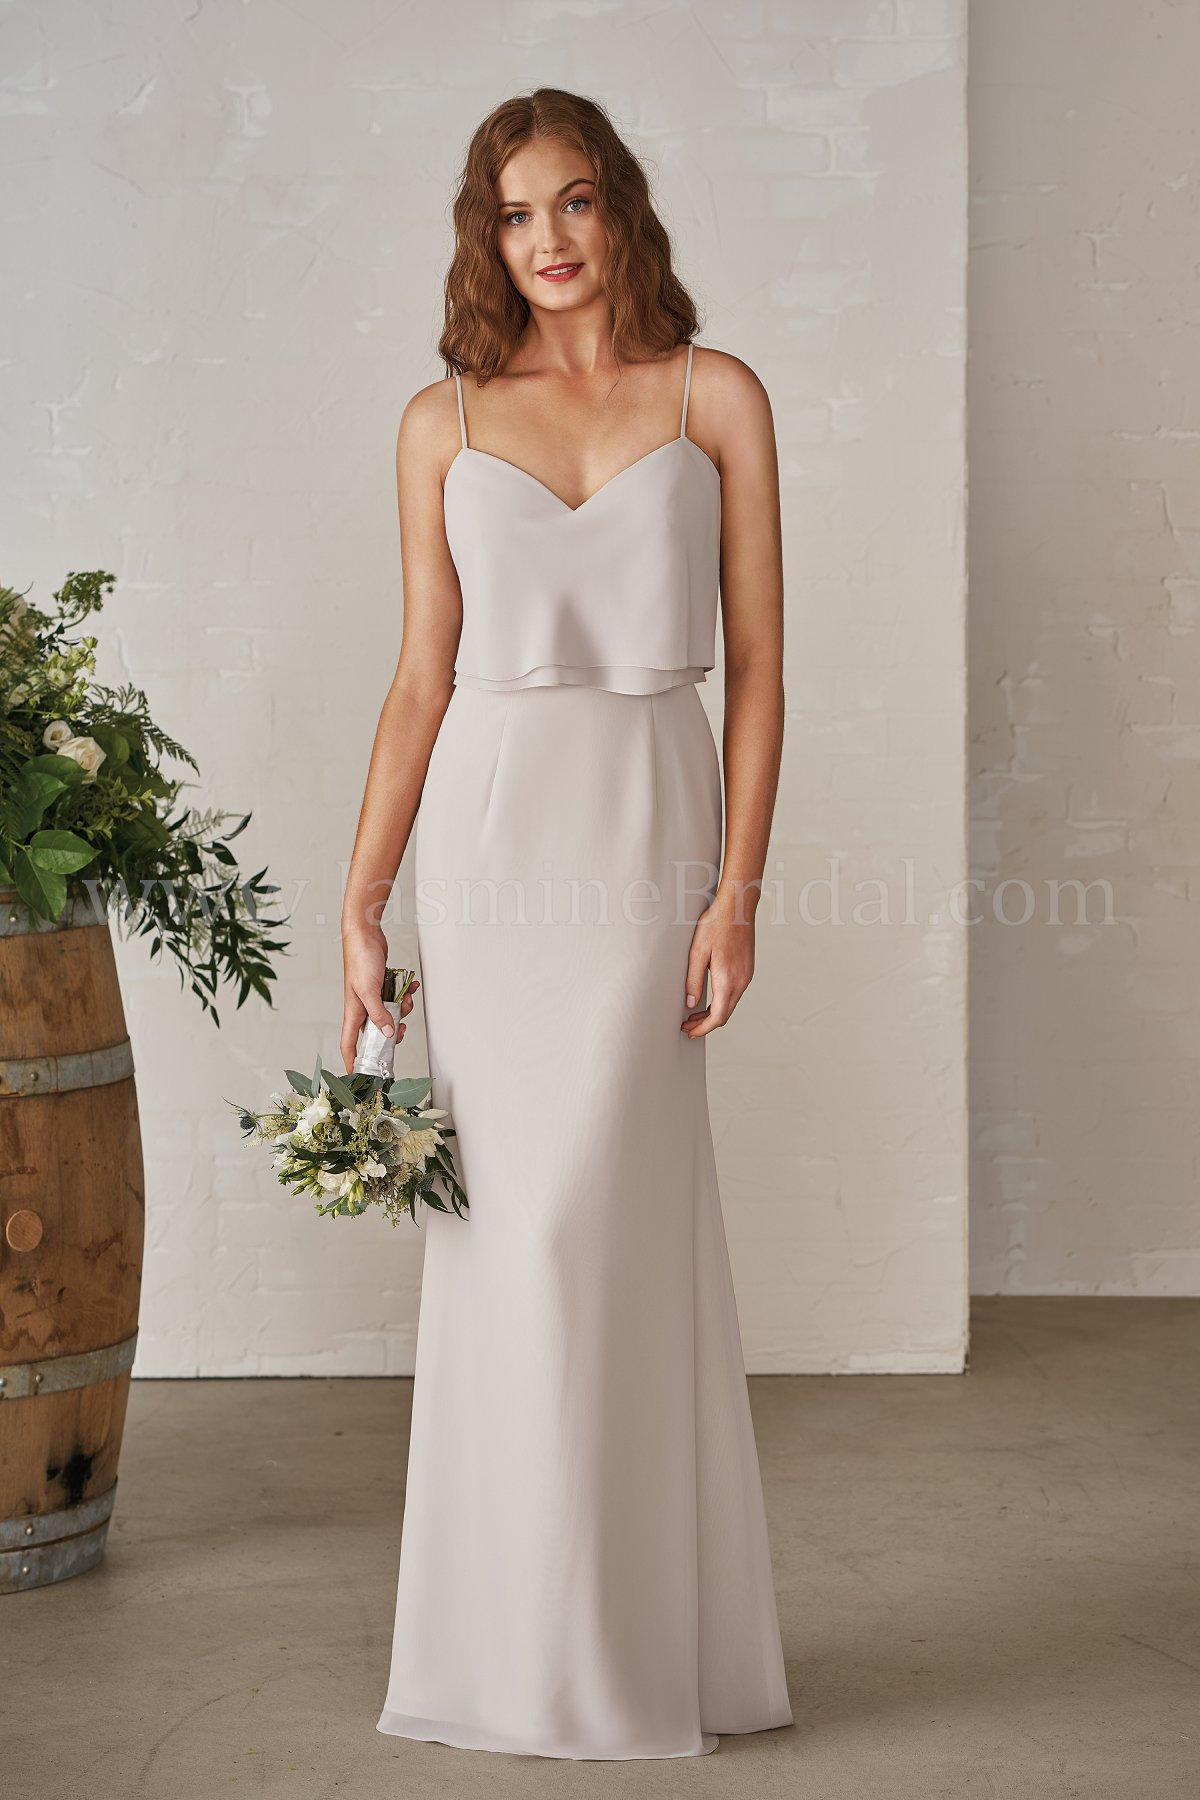 c91c1a2ee29 P206001 Long V-neck Georgette Bridesmaid Dress with Spaghetti Straps